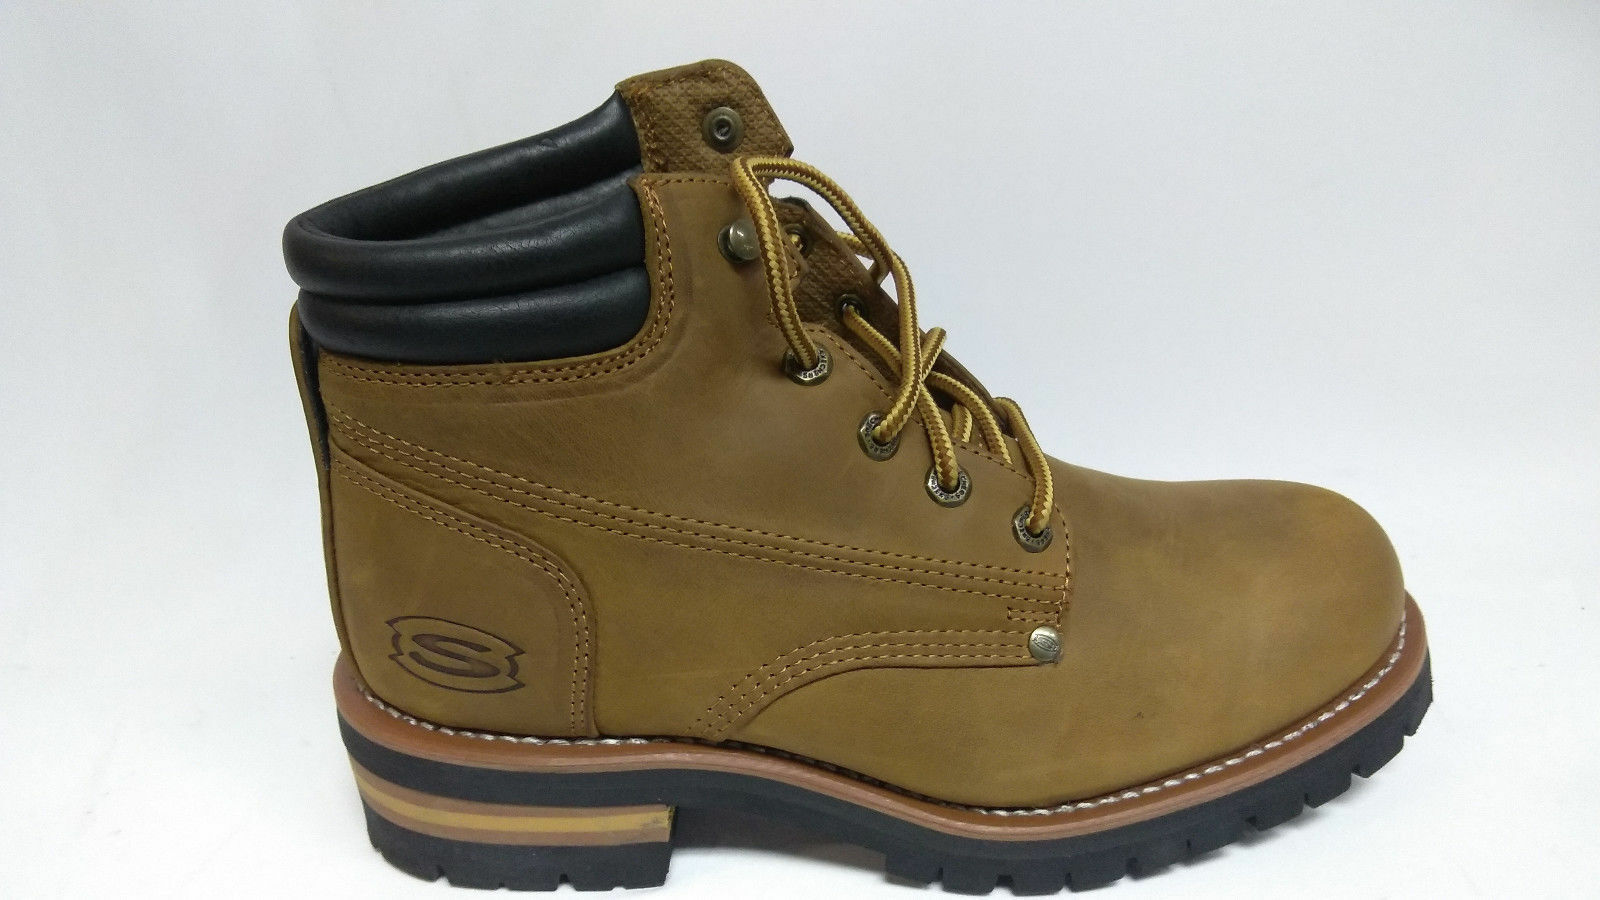 Hike boots, Biker Boots Rager Engineer Boot by Skechers